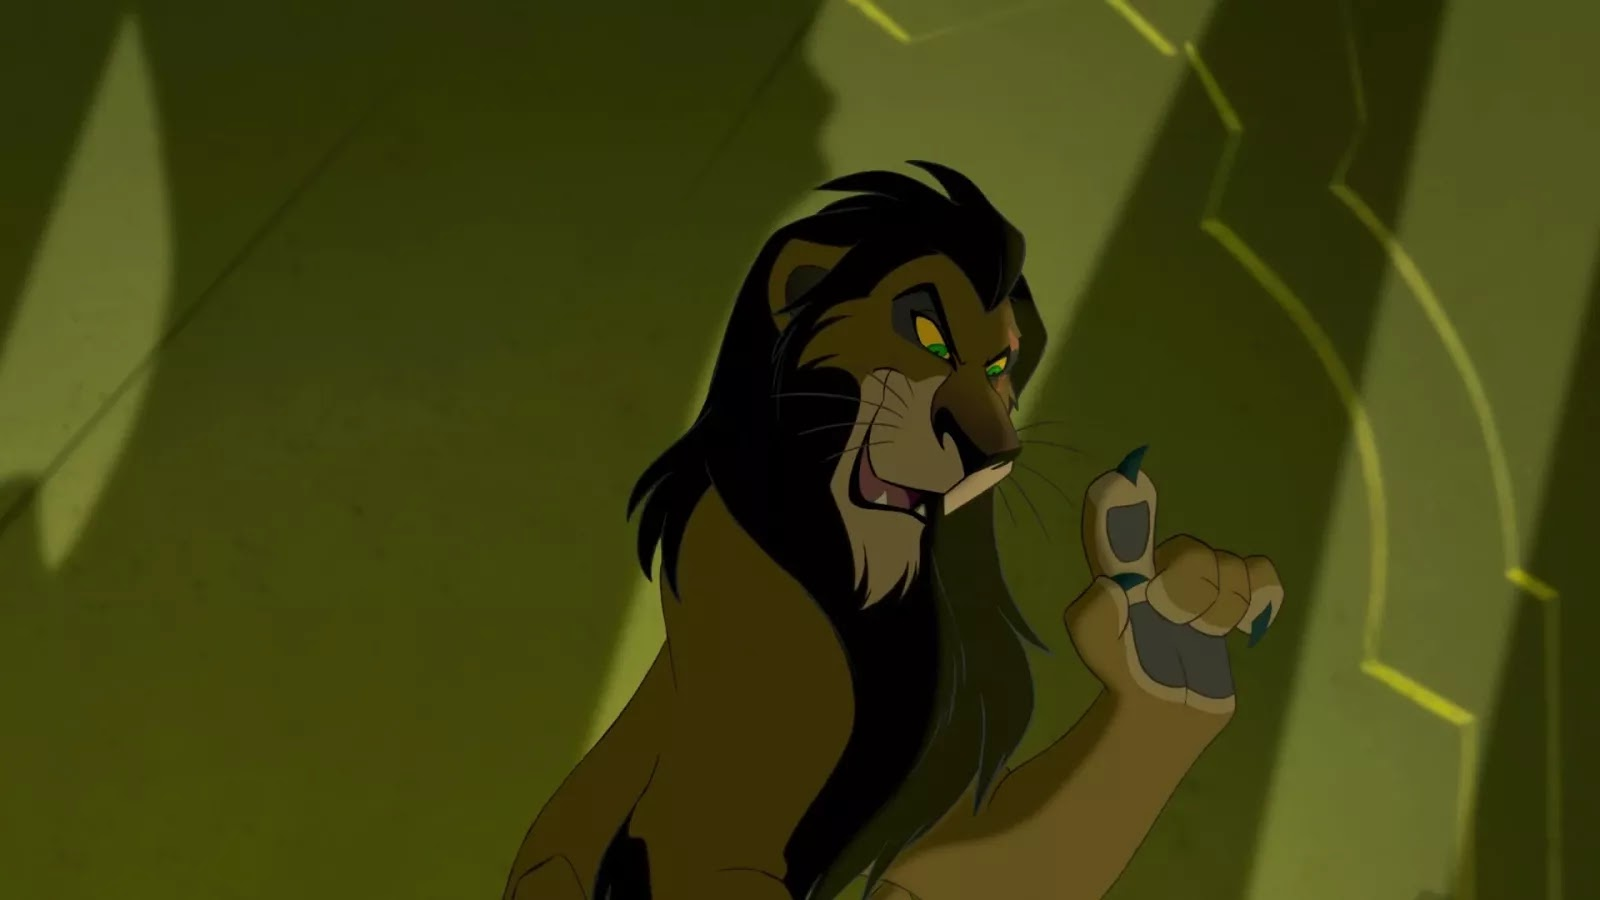 Chiwetel Ejiofor In Early Talk To Voice Scar In Disney's Remake Of 'THE LION KING'.